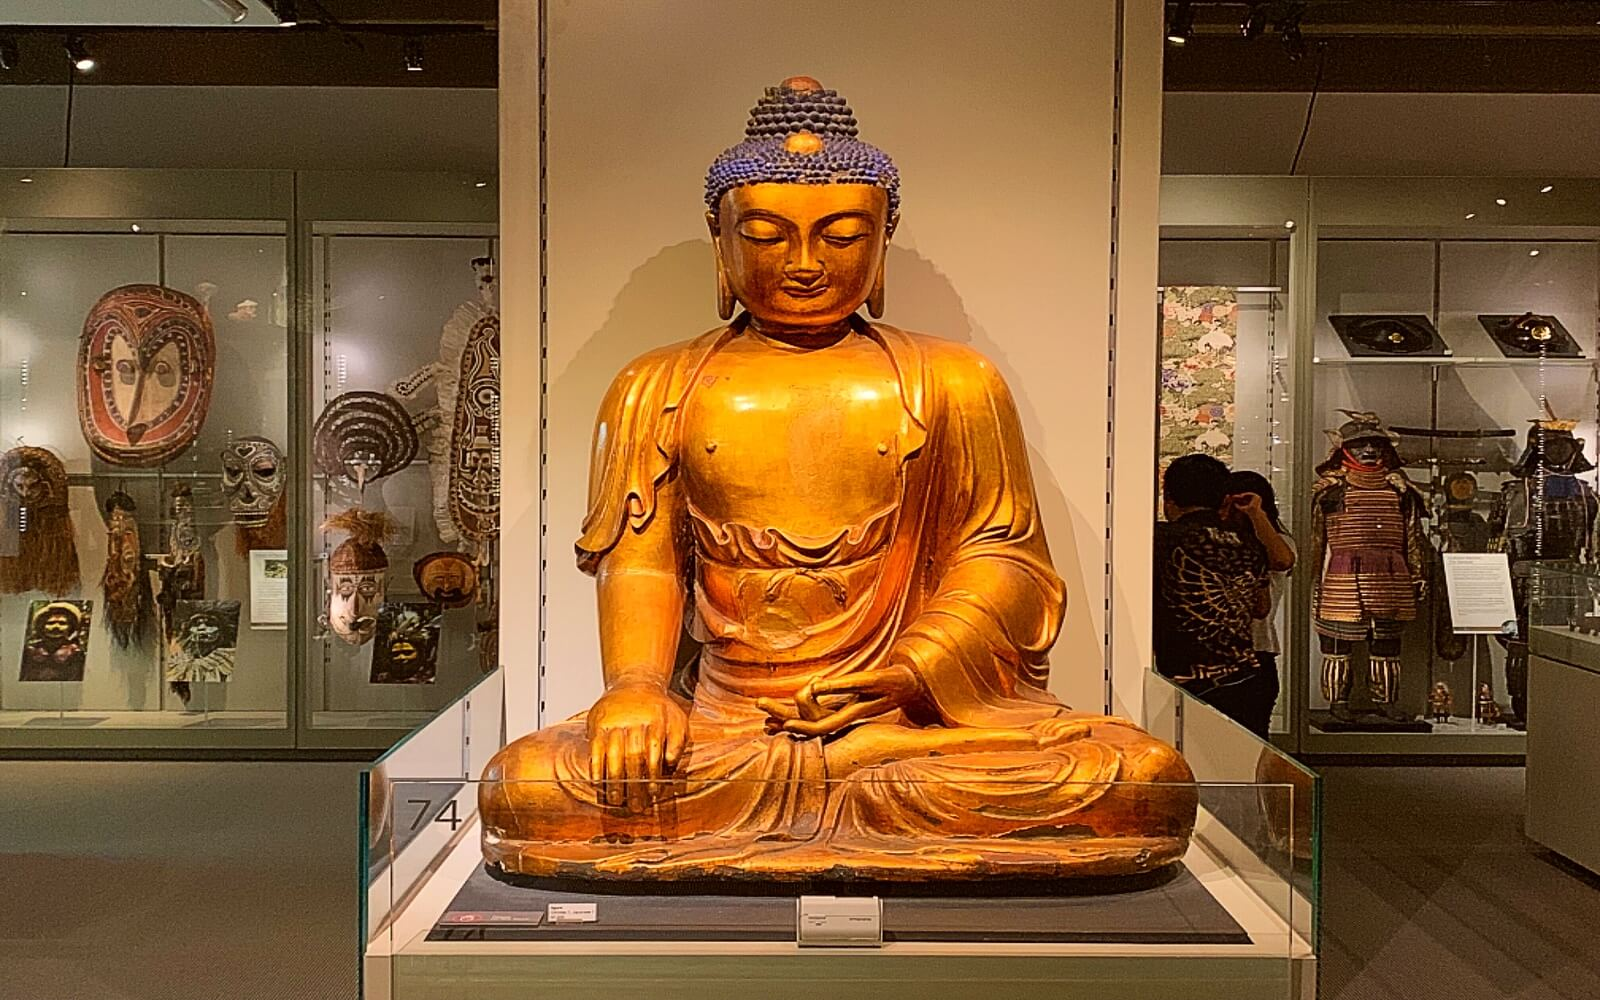 A Buddha statue at the Museum of Anthropology